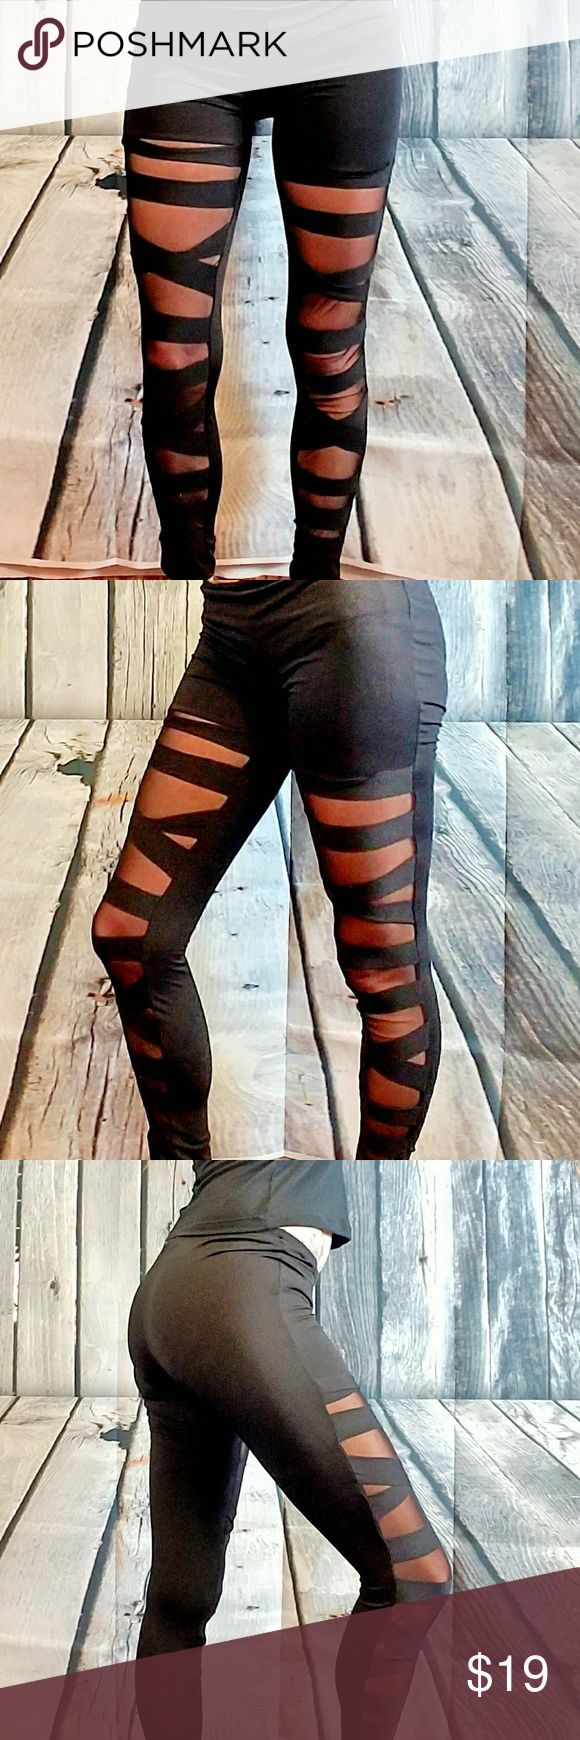 black see through leggings s/m black see through leggings can be dressed up or down, can turn any outfit into the perfect outfit 😘 size small/ medium Pants Leggings